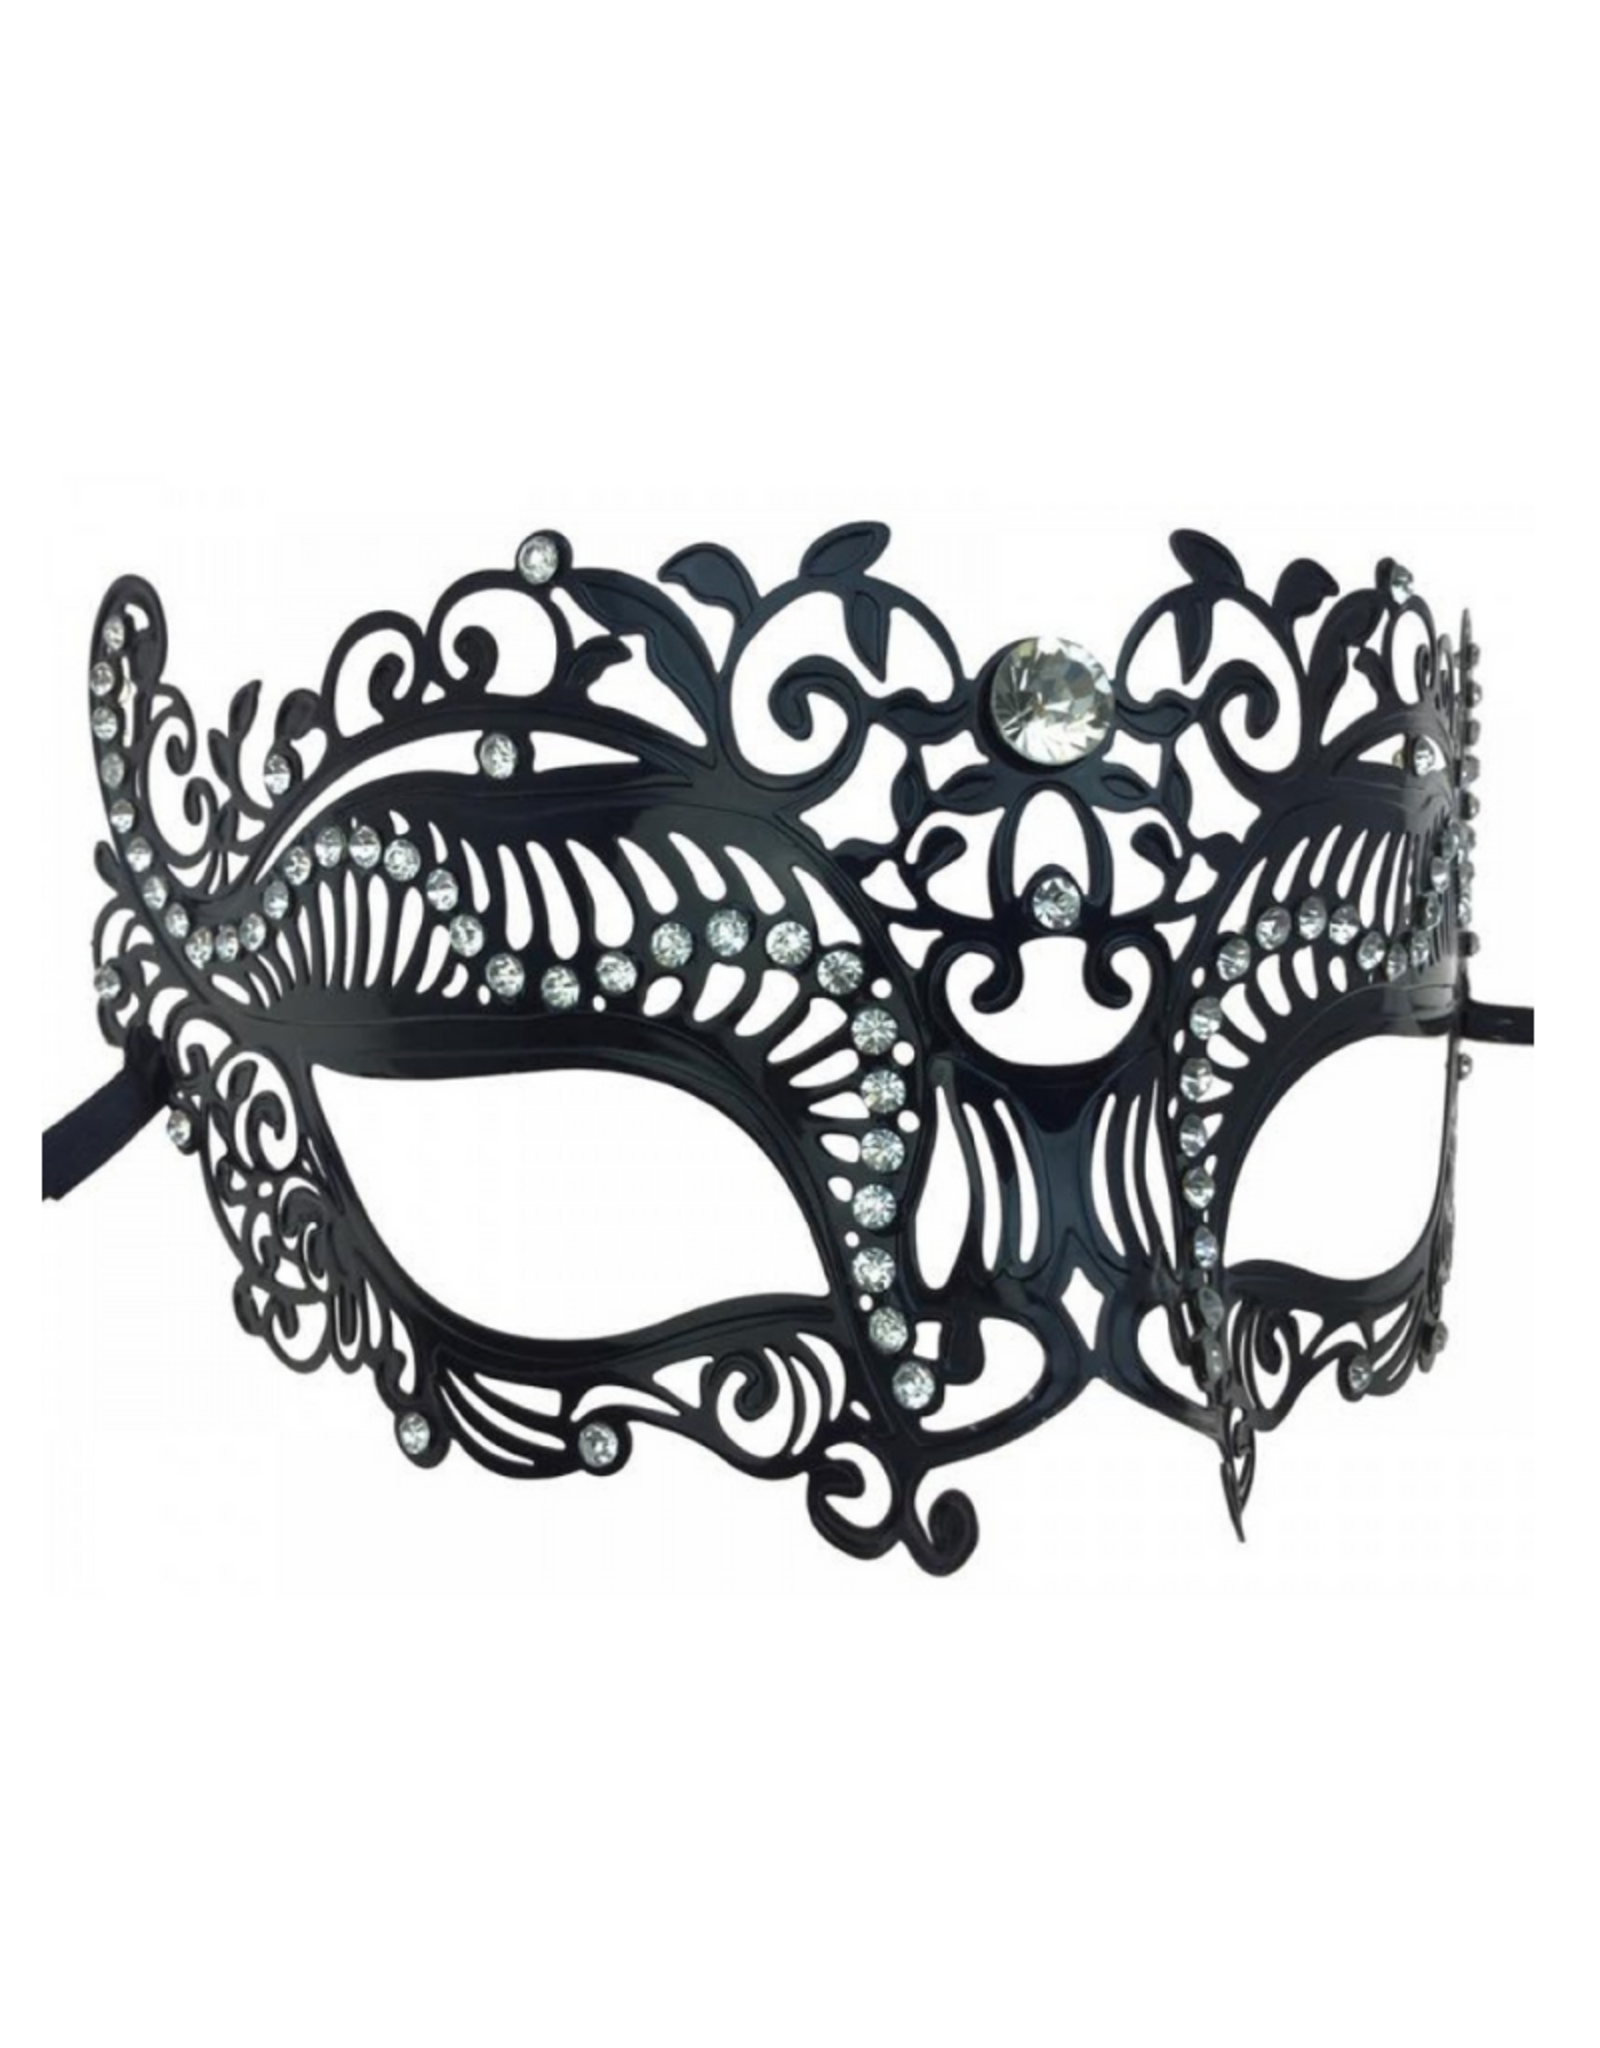 KBW Global Corp MASK-METAL-VENETIAN W/ RHINESTONES